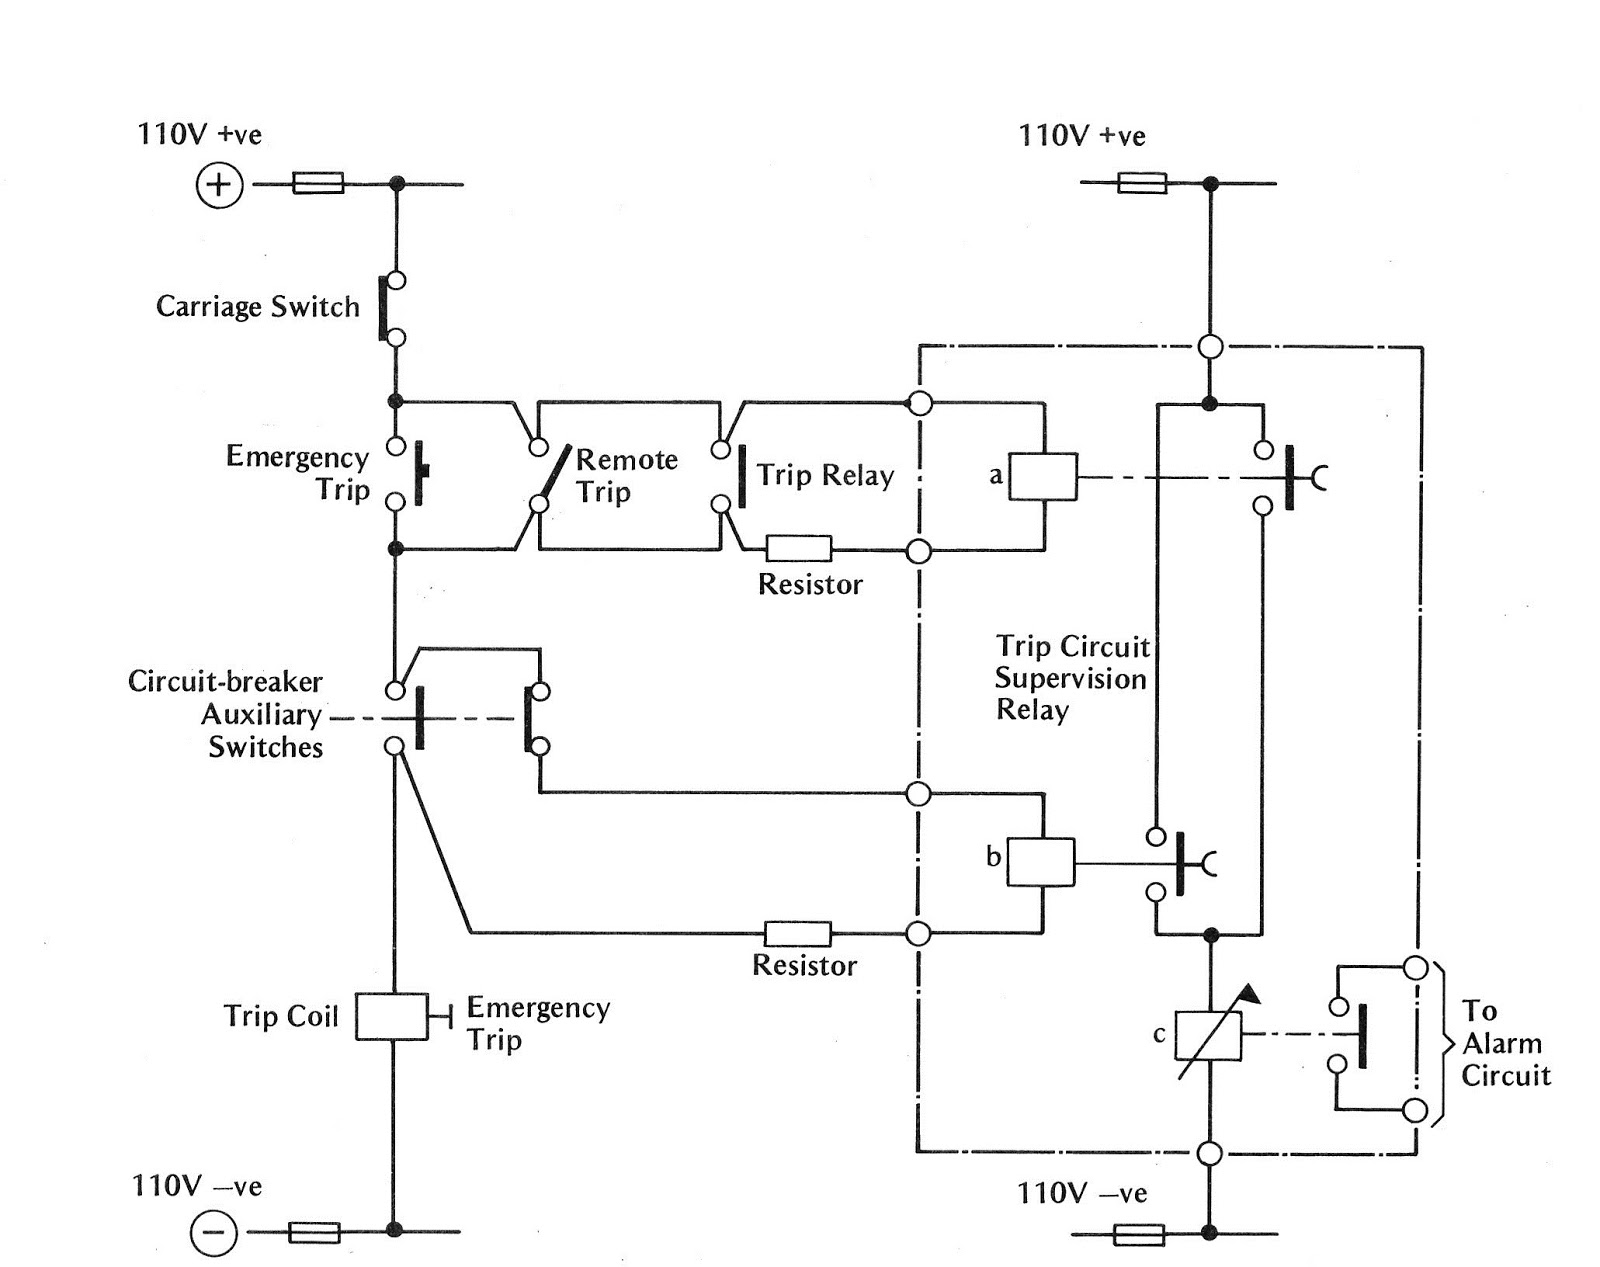 wiring diagram for shunt trip breaker, Wiring diagram